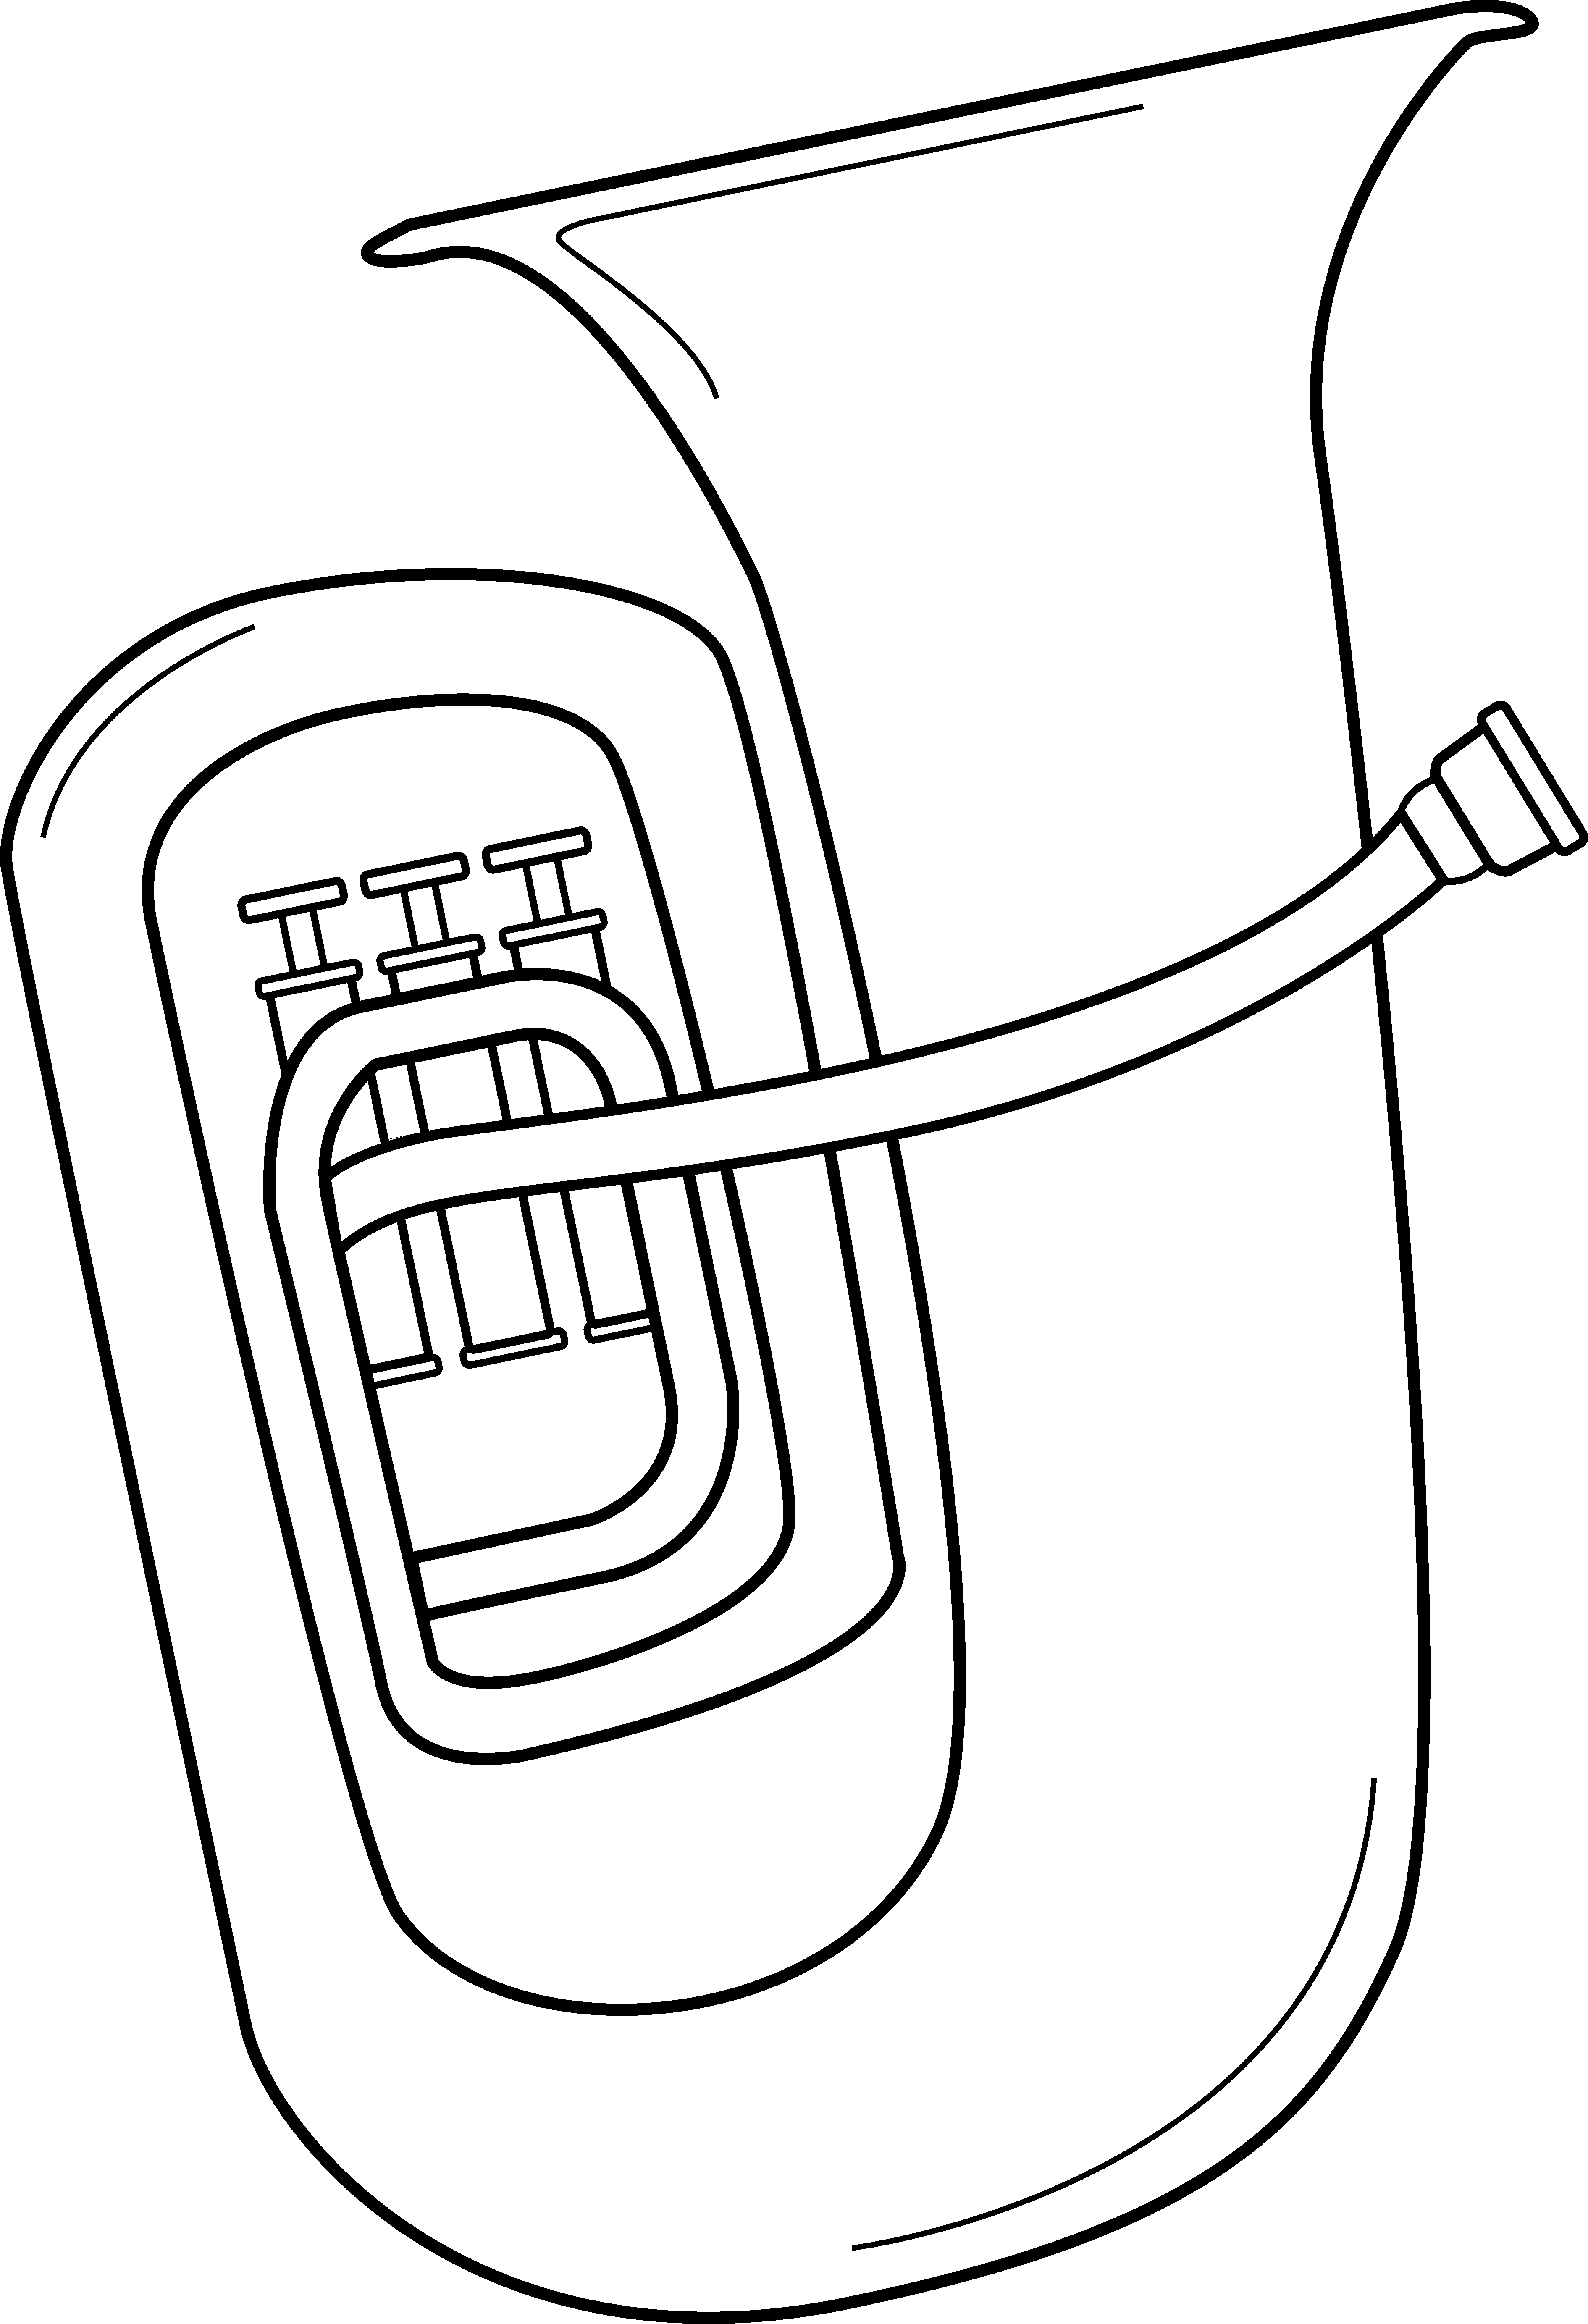 Musician clipart tuba player. Coloring page eskayalitim